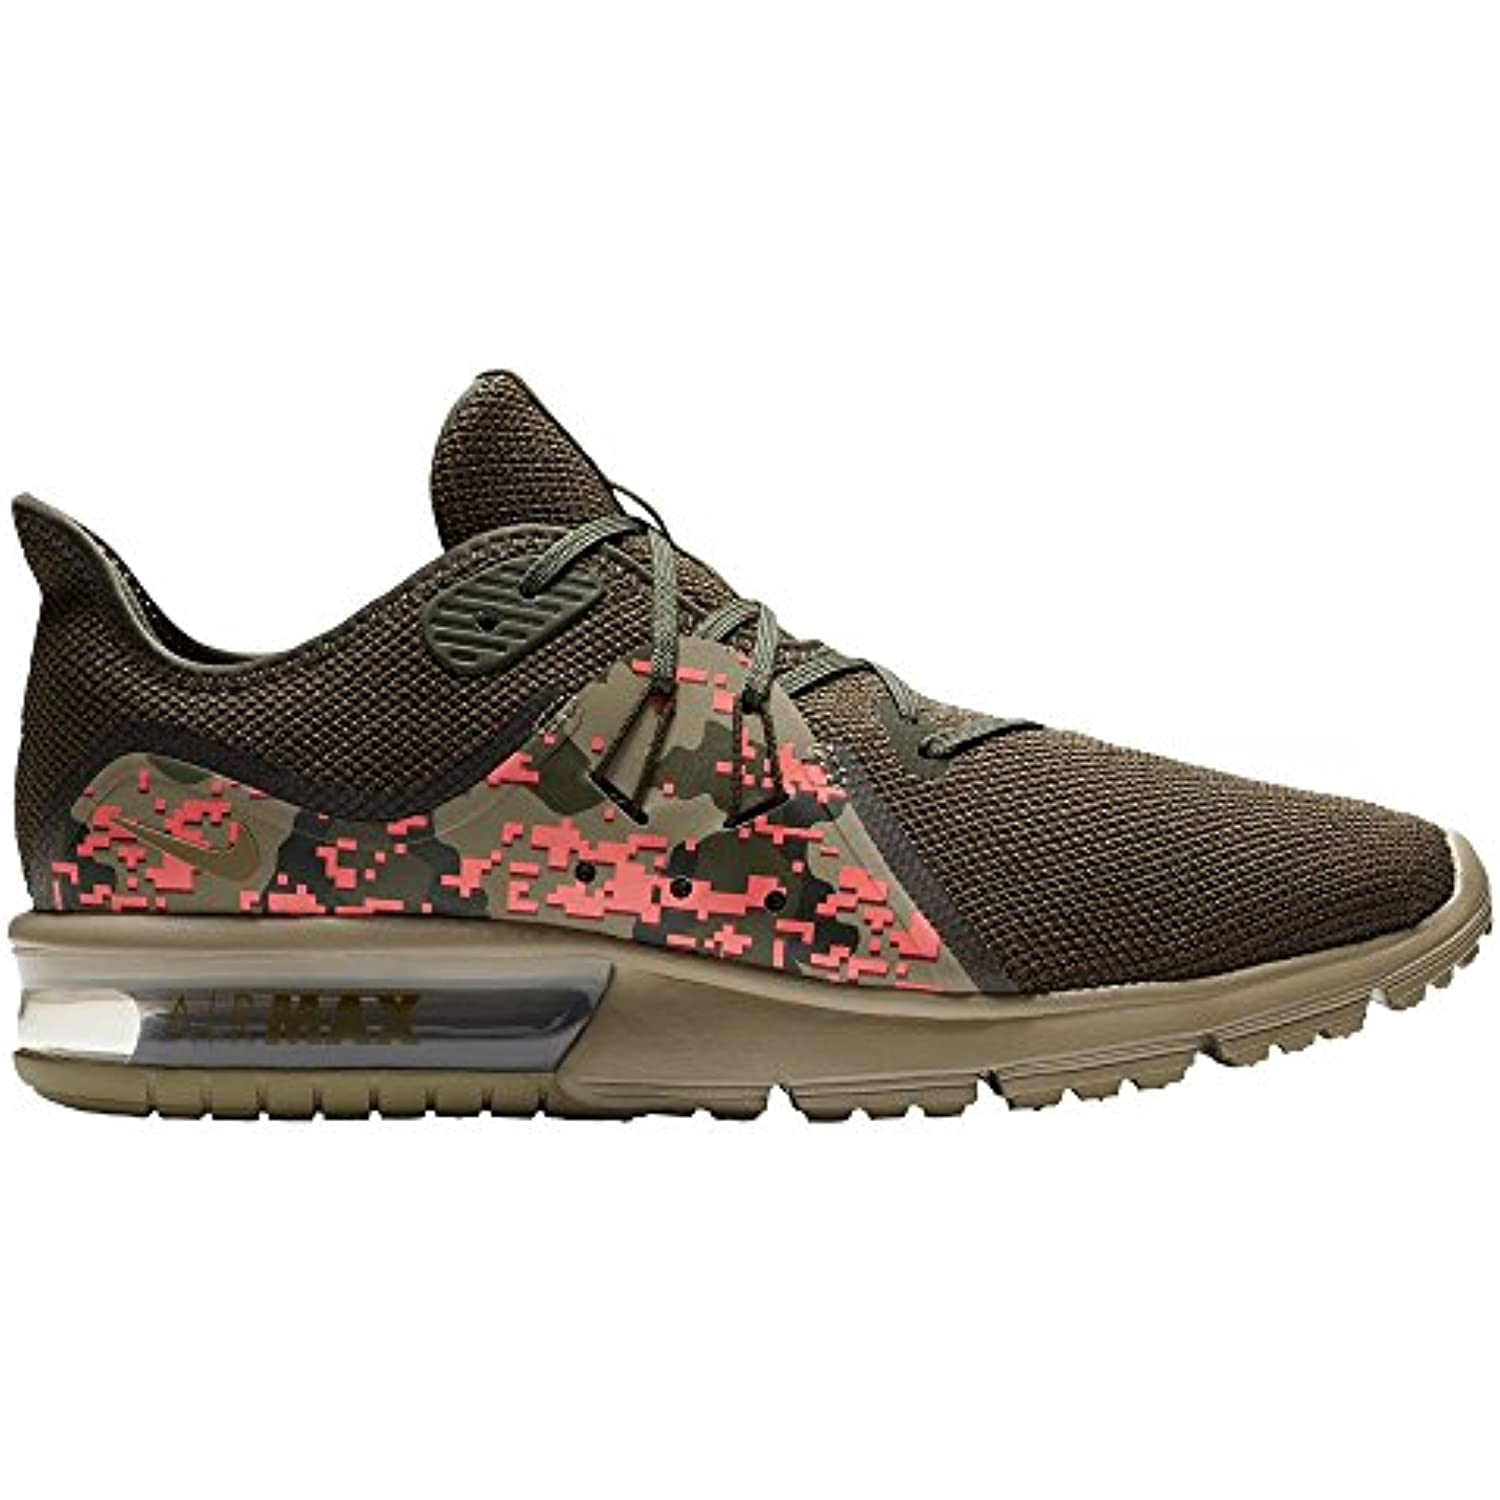 sale retailer ffa87 23d71 NIKE NIKE NIKE Air Max Sequent 3 C, Chaussures de Running Comp  eacute tition Homme B07CBZ9PWD - fa6c68